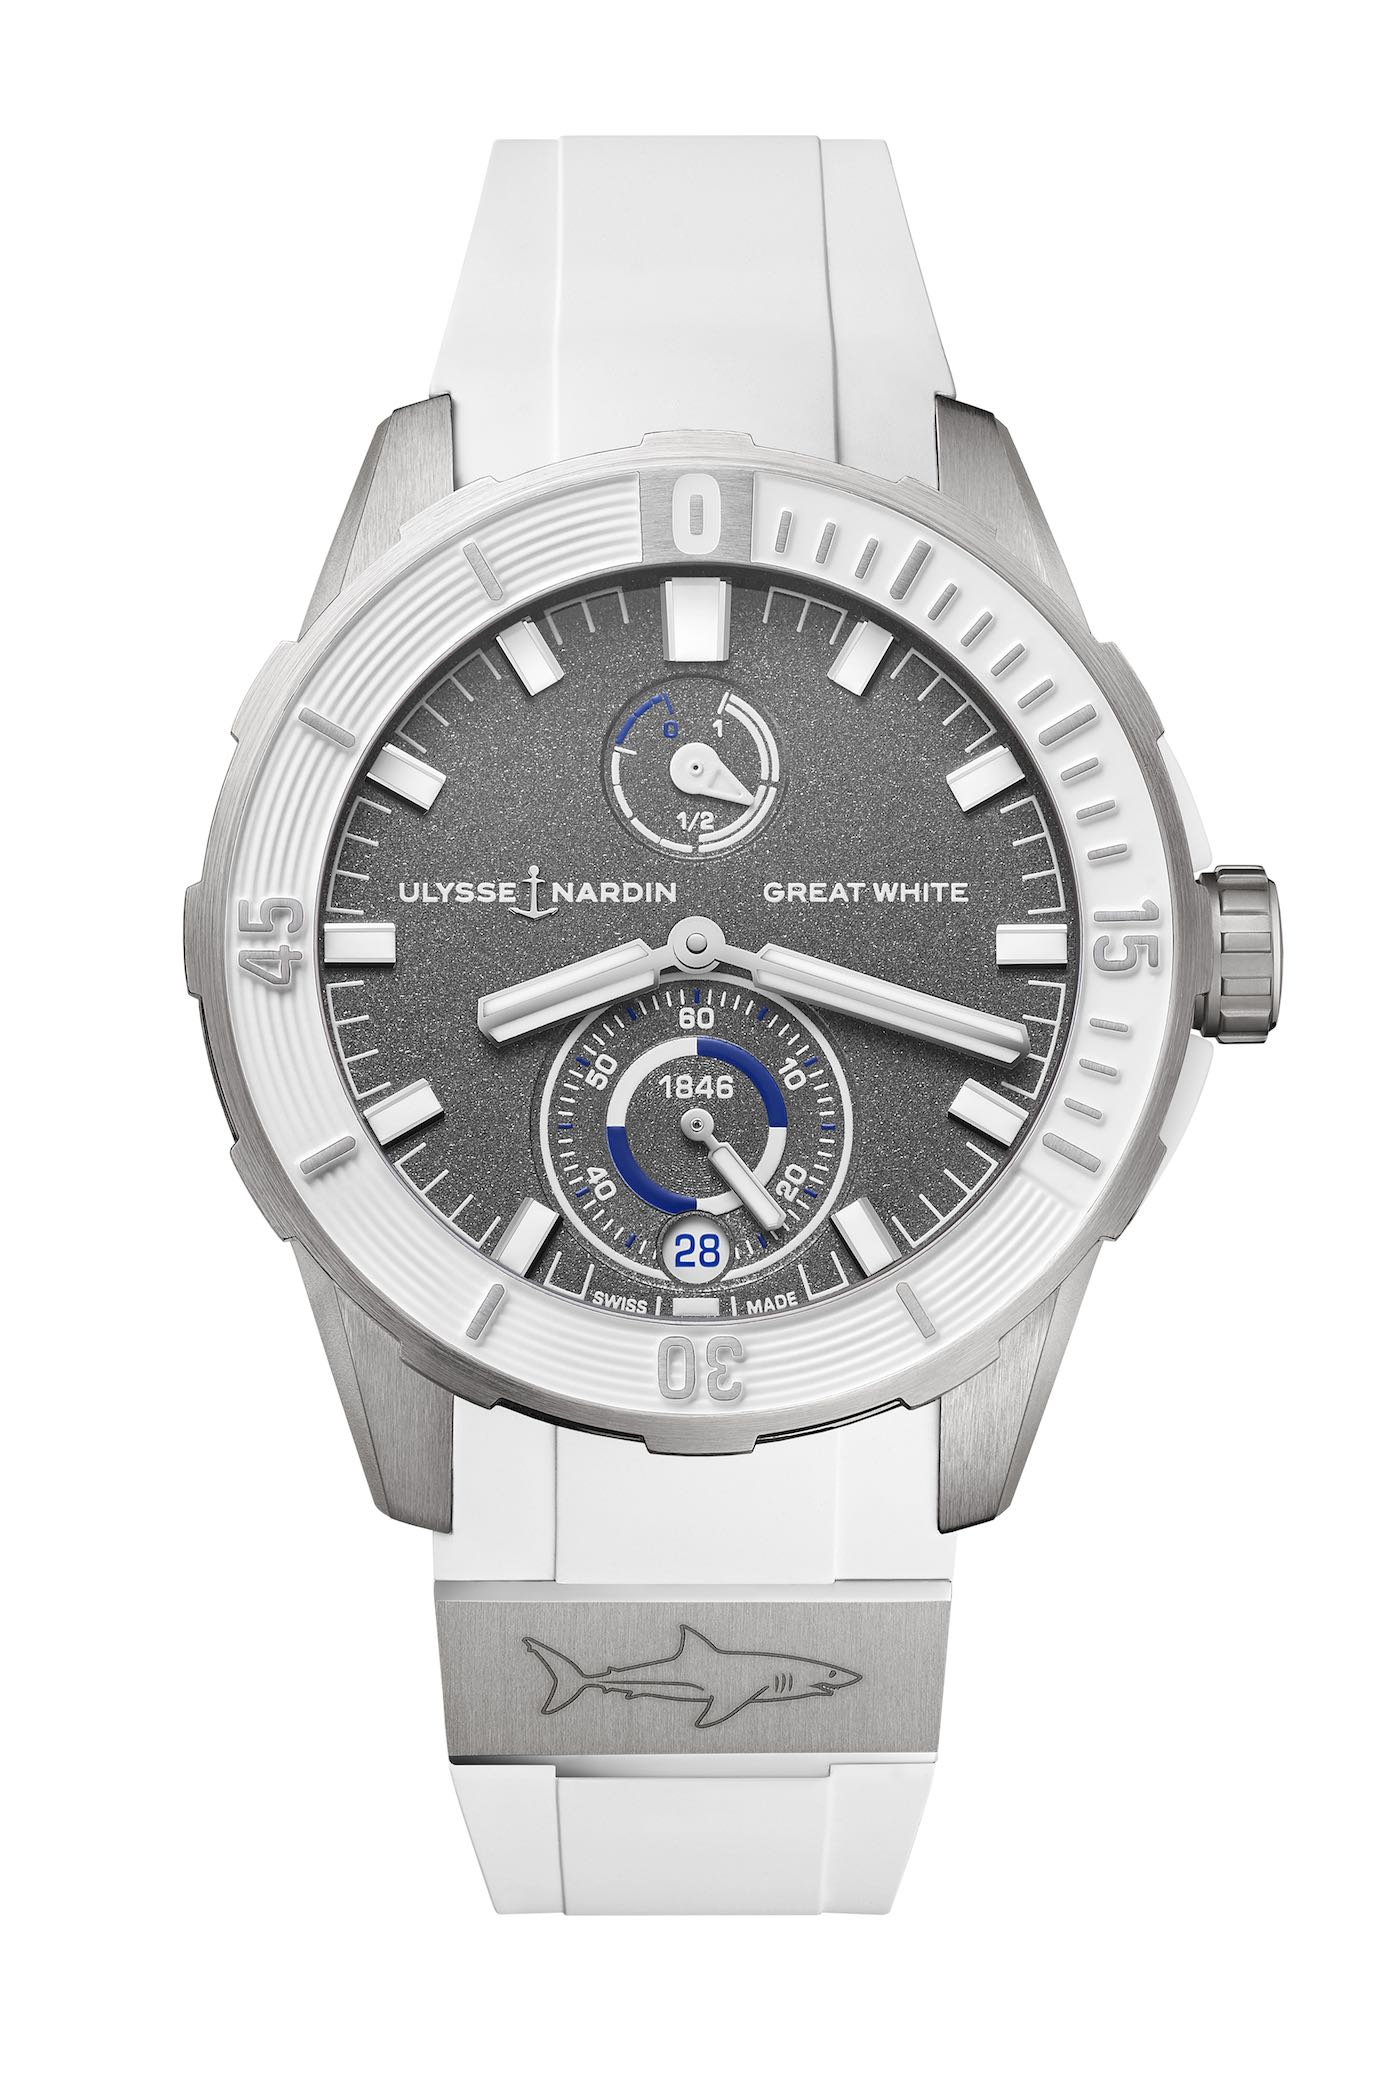 2018 Ulysse Nardin Diver Chronometer Great White Limited Edition